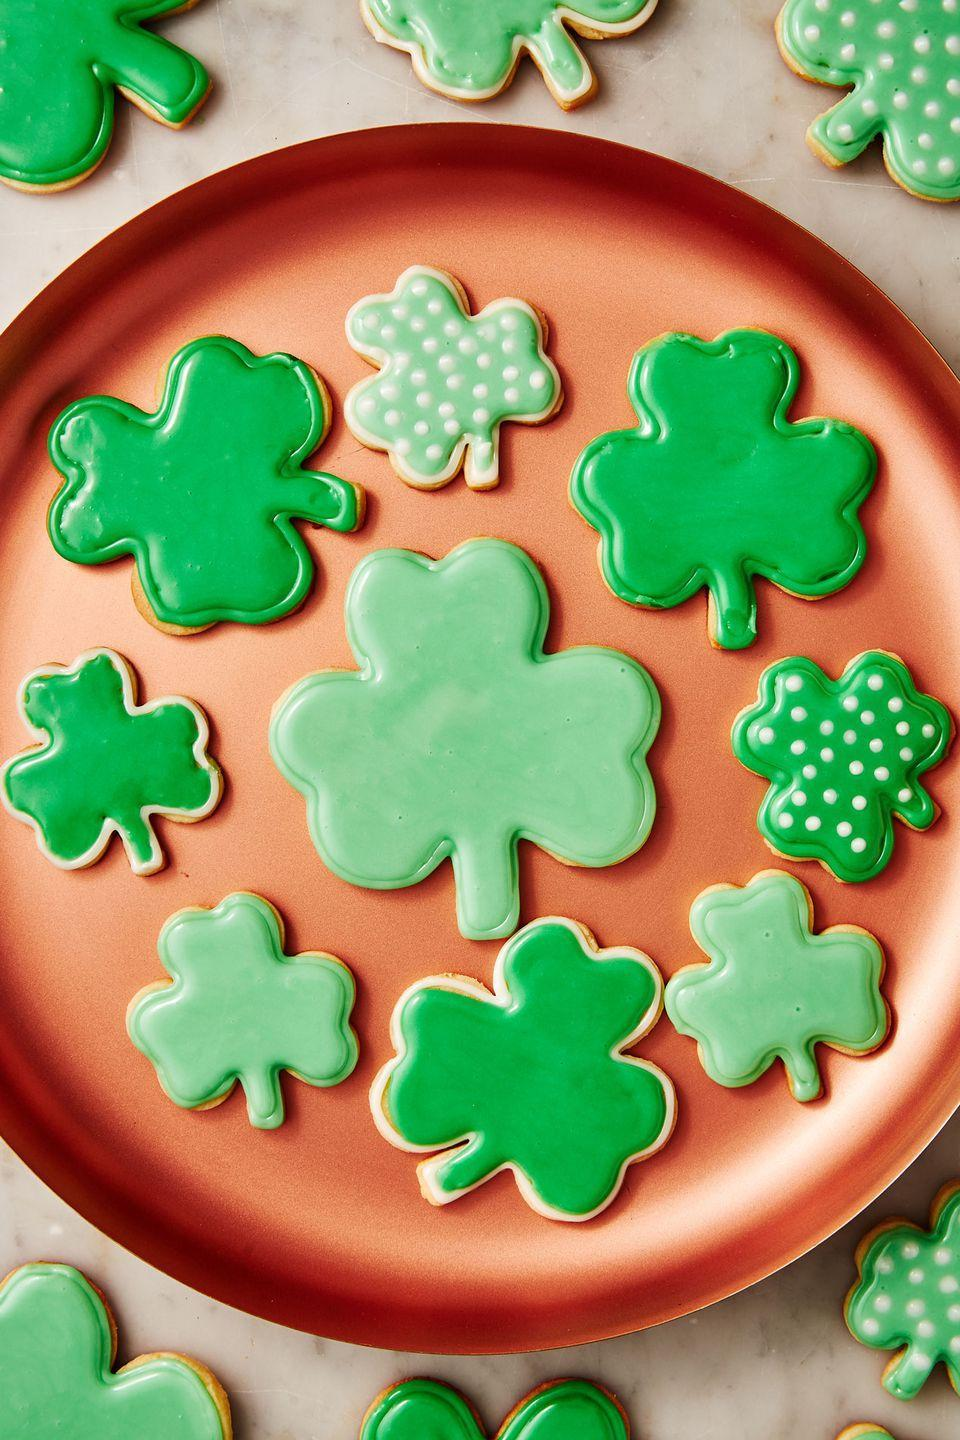 """<p>How <em>gorgeous</em> are these?</p><p>Get the recipe from <a href=""""https://www.delish.com/cooking/recipe-ideas/a30877659/st-patricks-day-cookie-recipe/"""" rel=""""nofollow noopener"""" target=""""_blank"""" data-ylk=""""slk:Delish."""" class=""""link rapid-noclick-resp"""">Delish. </a></p>"""